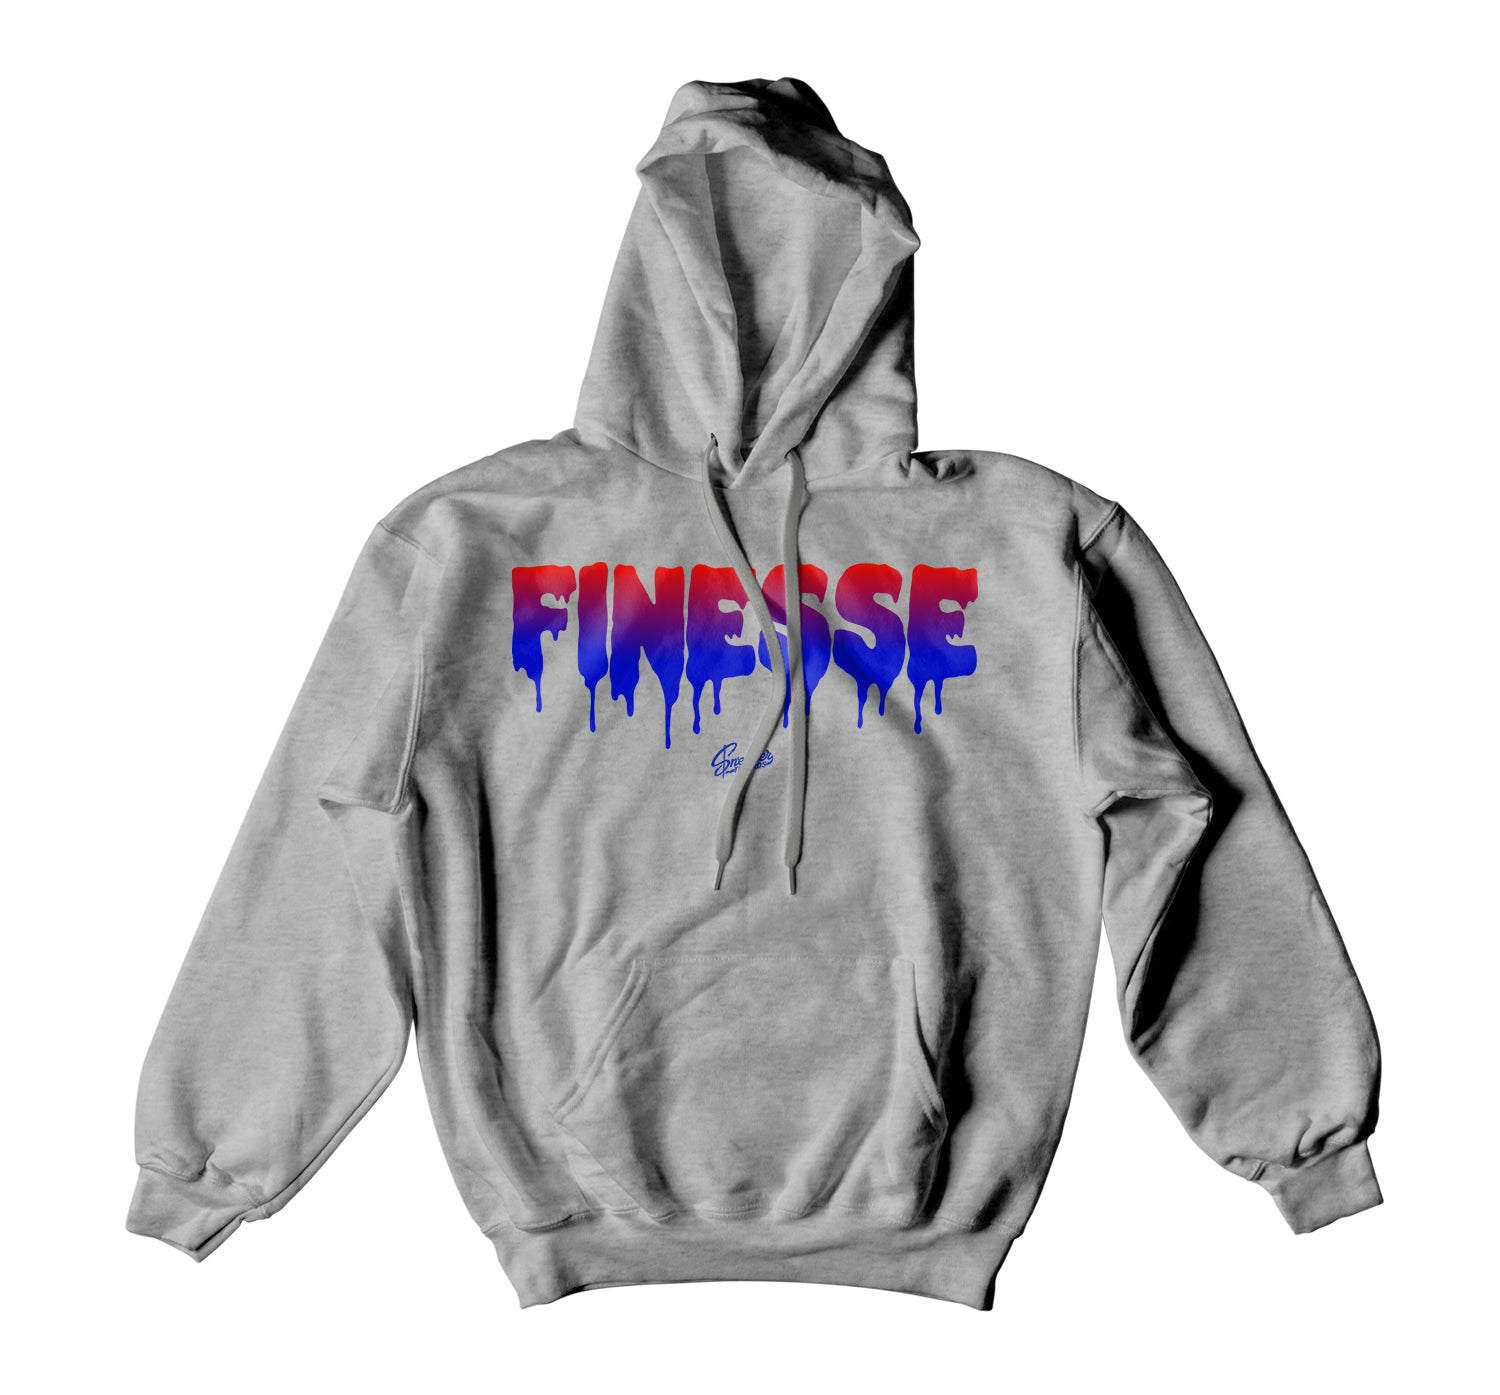 All Star 2020 Tune Squad Hoody  - Finesse - Heather Grey